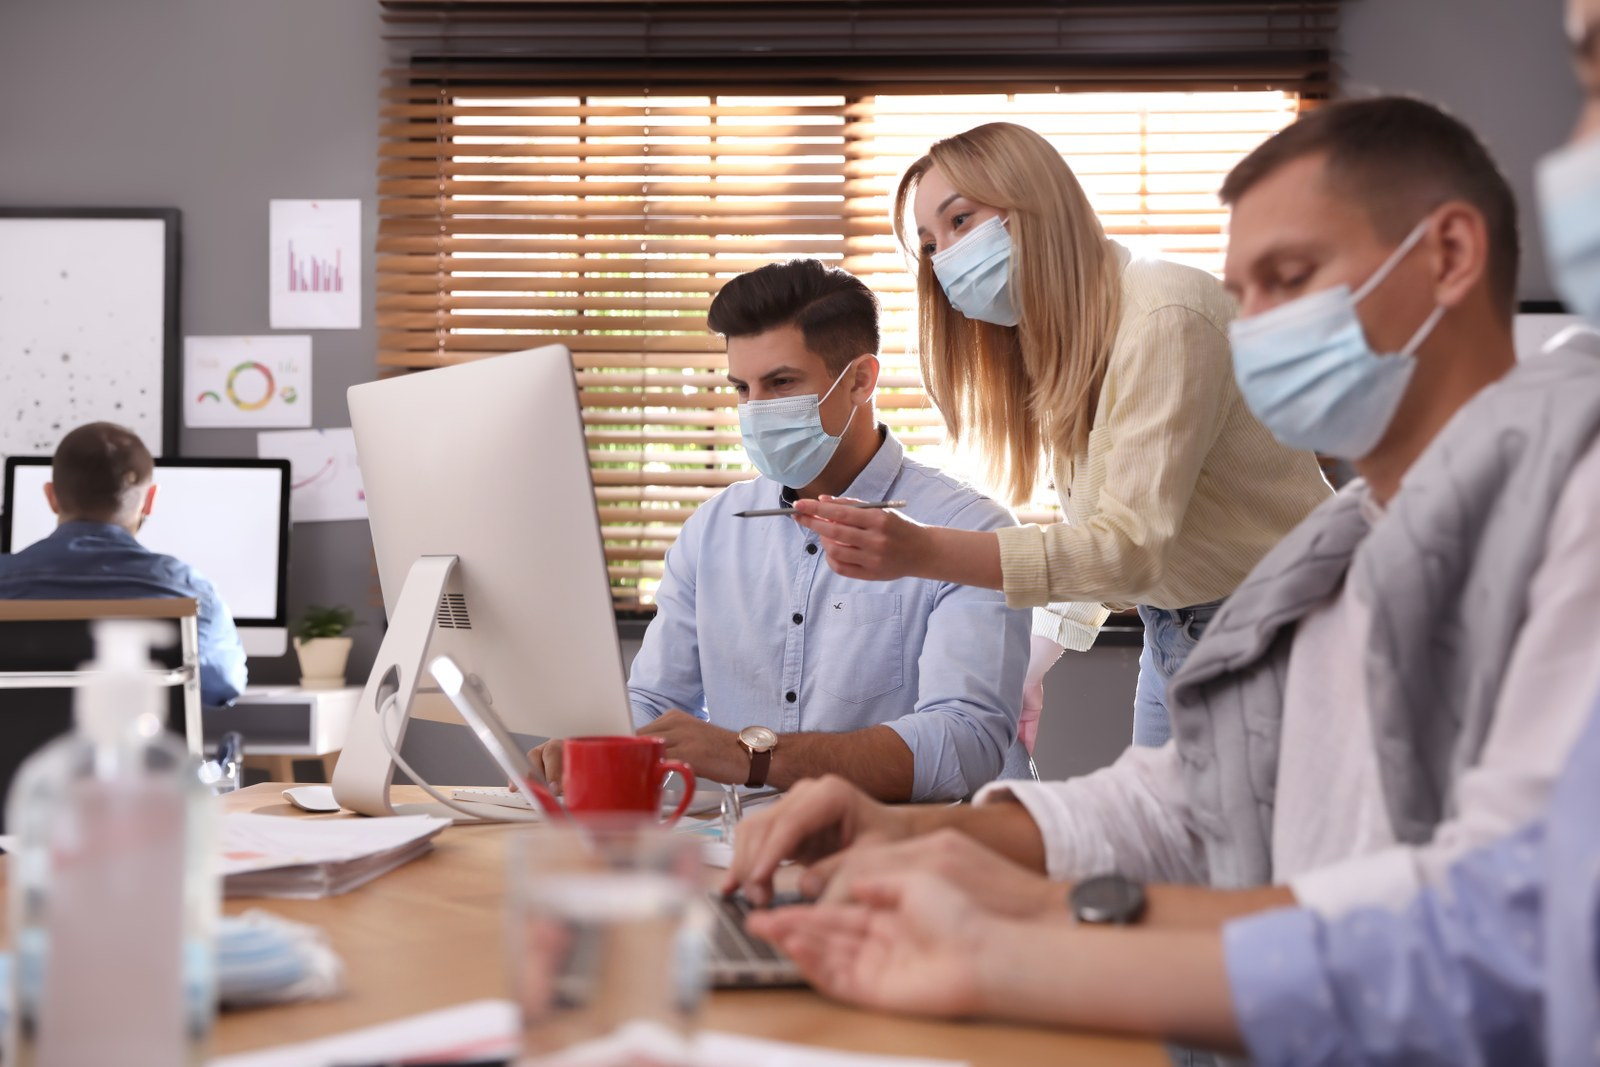 Coworkers with masks in office. Protective measure during COVID-19 pandemic